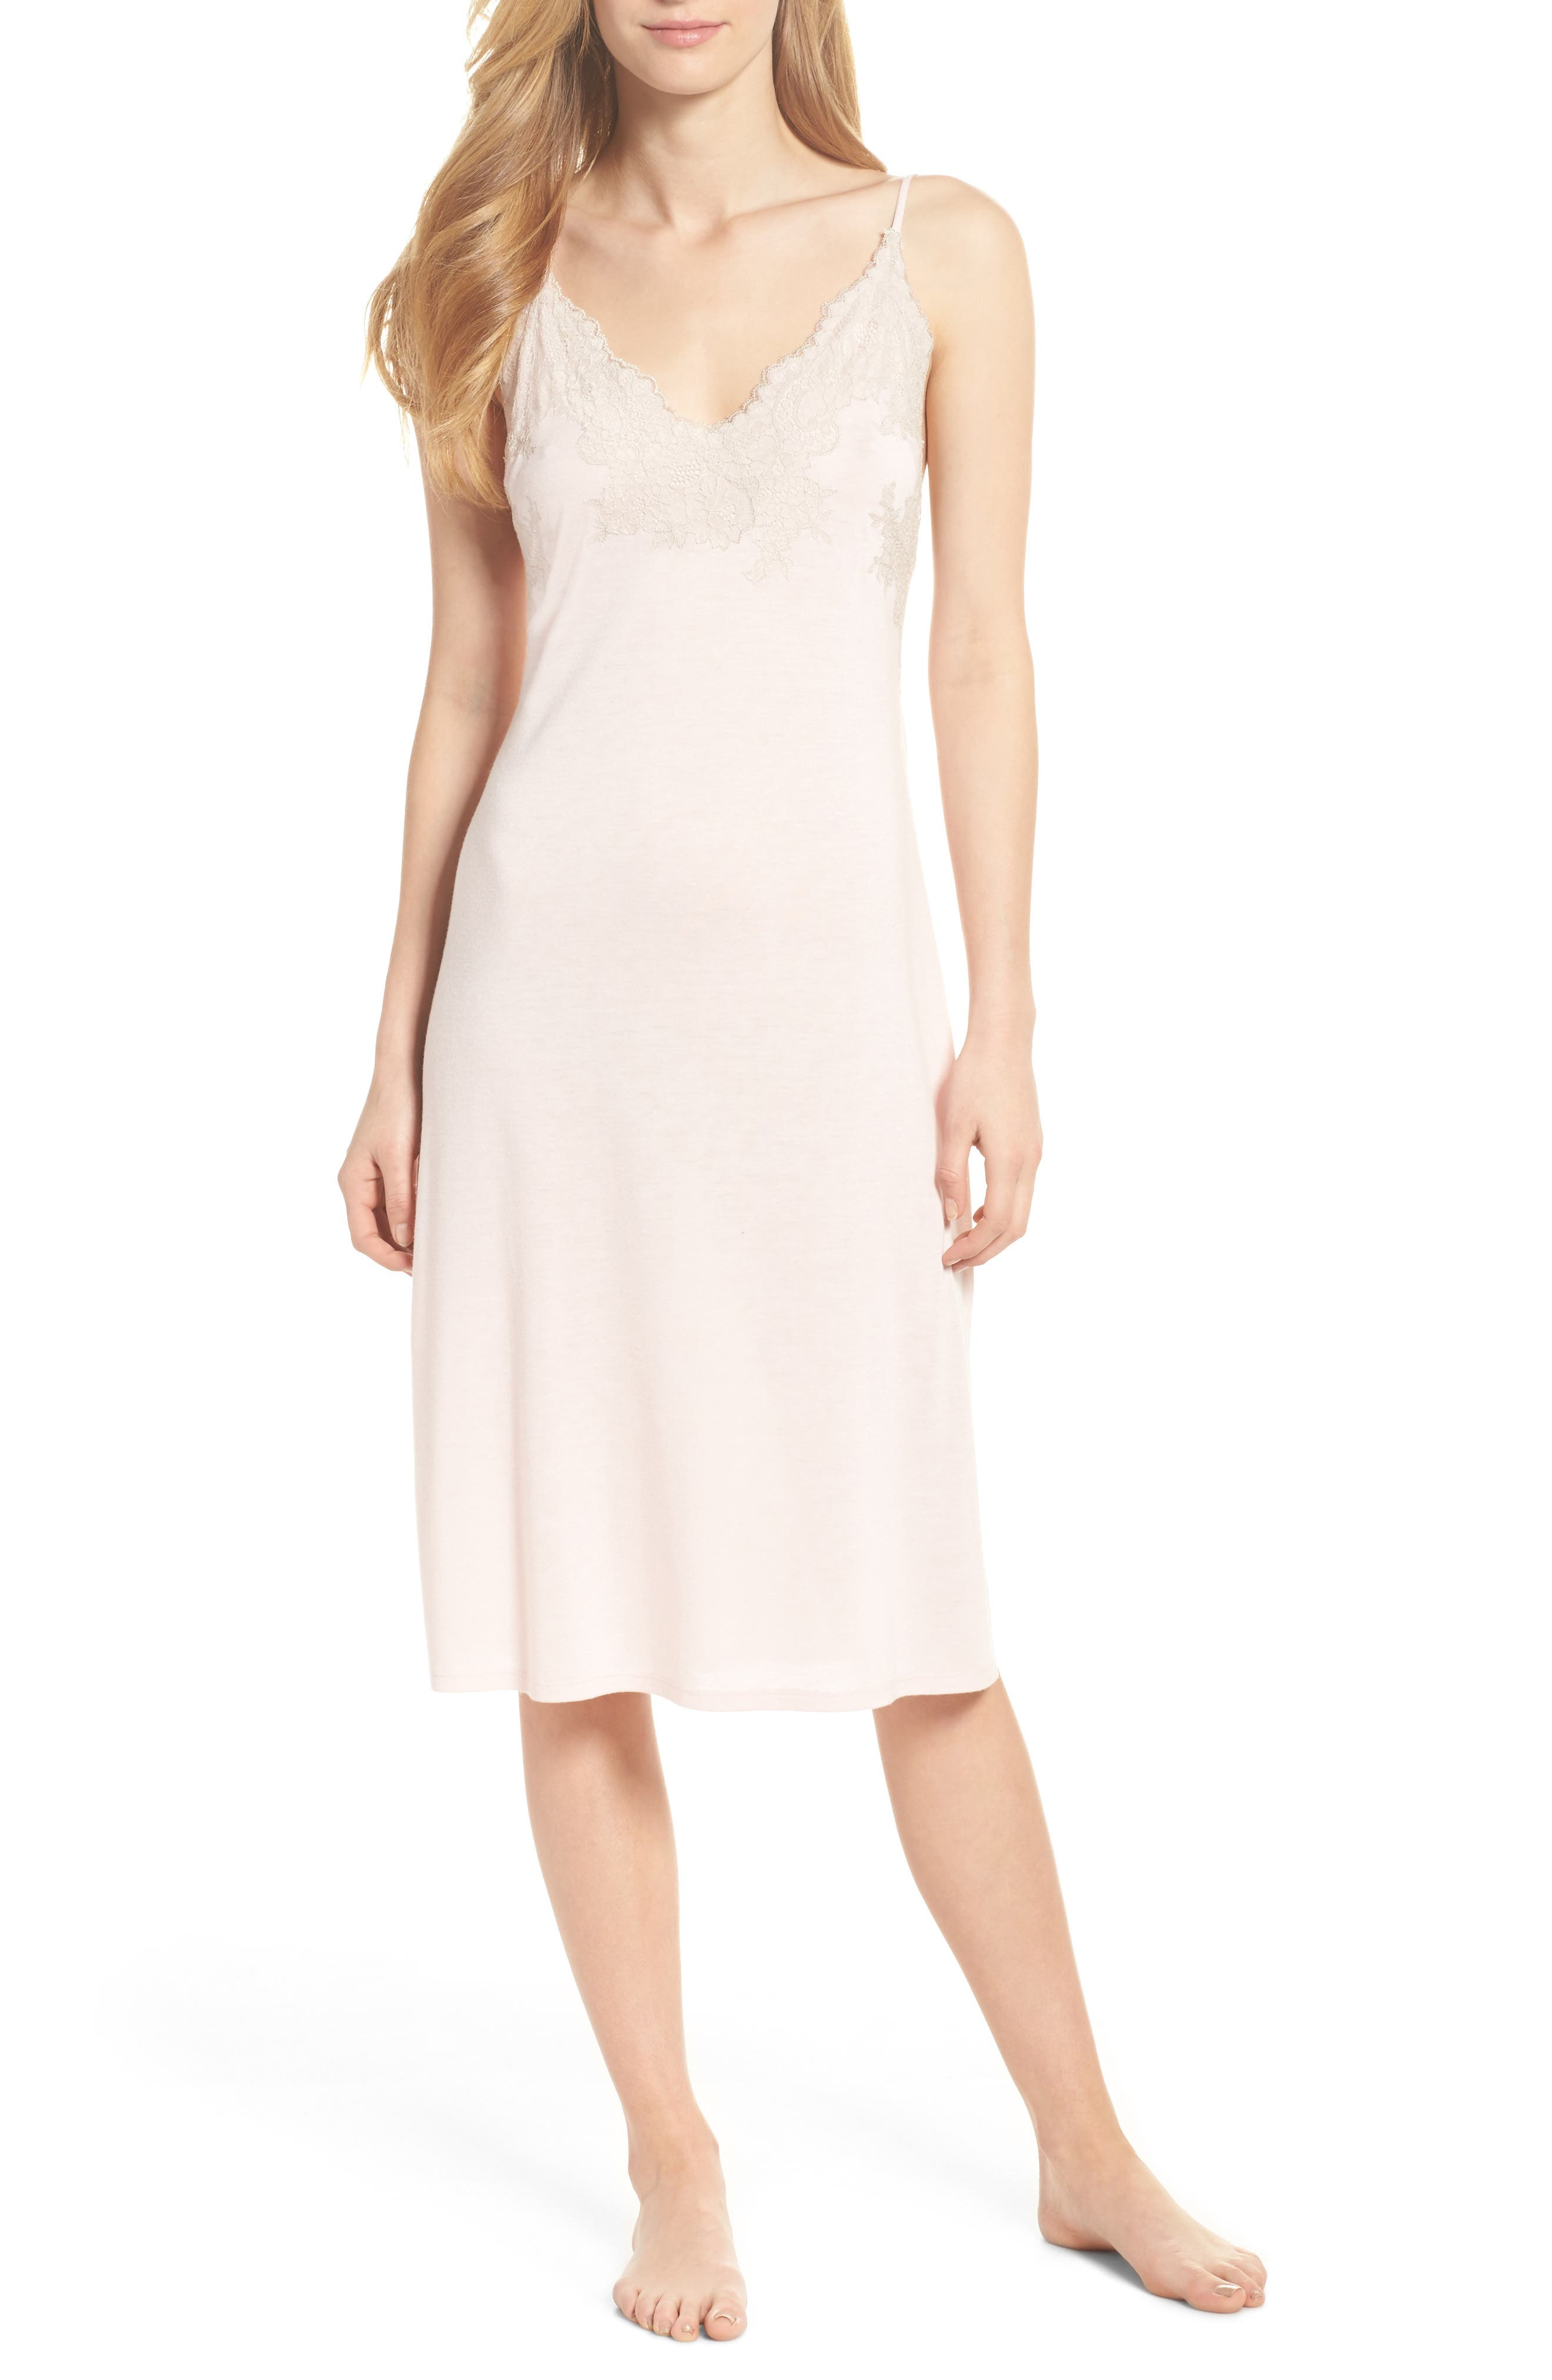 Luxe Shangri-La Nightgown,                         Main,                         color, Blush Pink